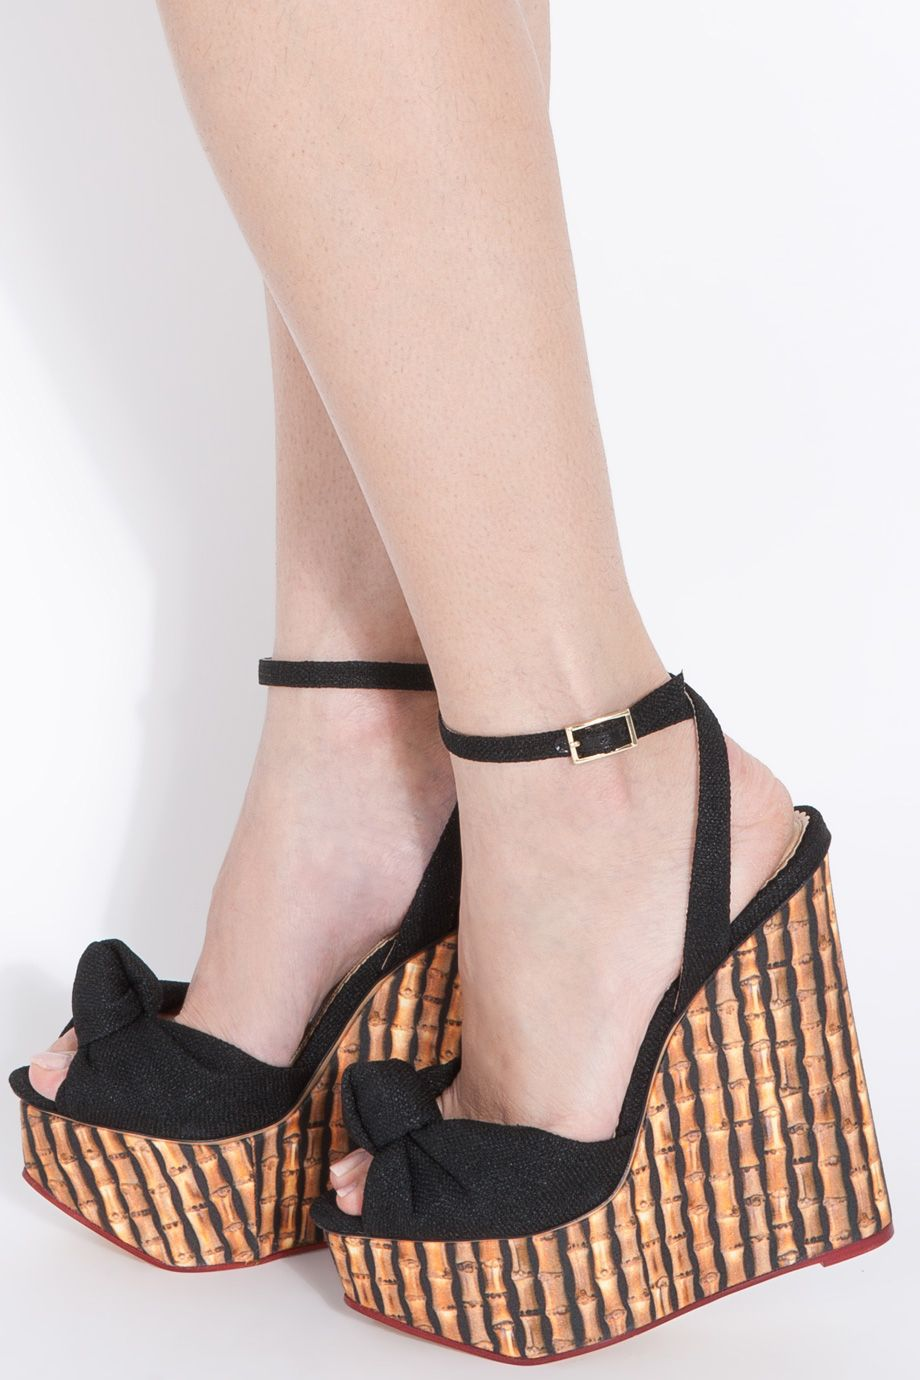 ab95fbff69b6 Charlotte Olympia Bamboo Wedge Linen Sandals in Black (multi)